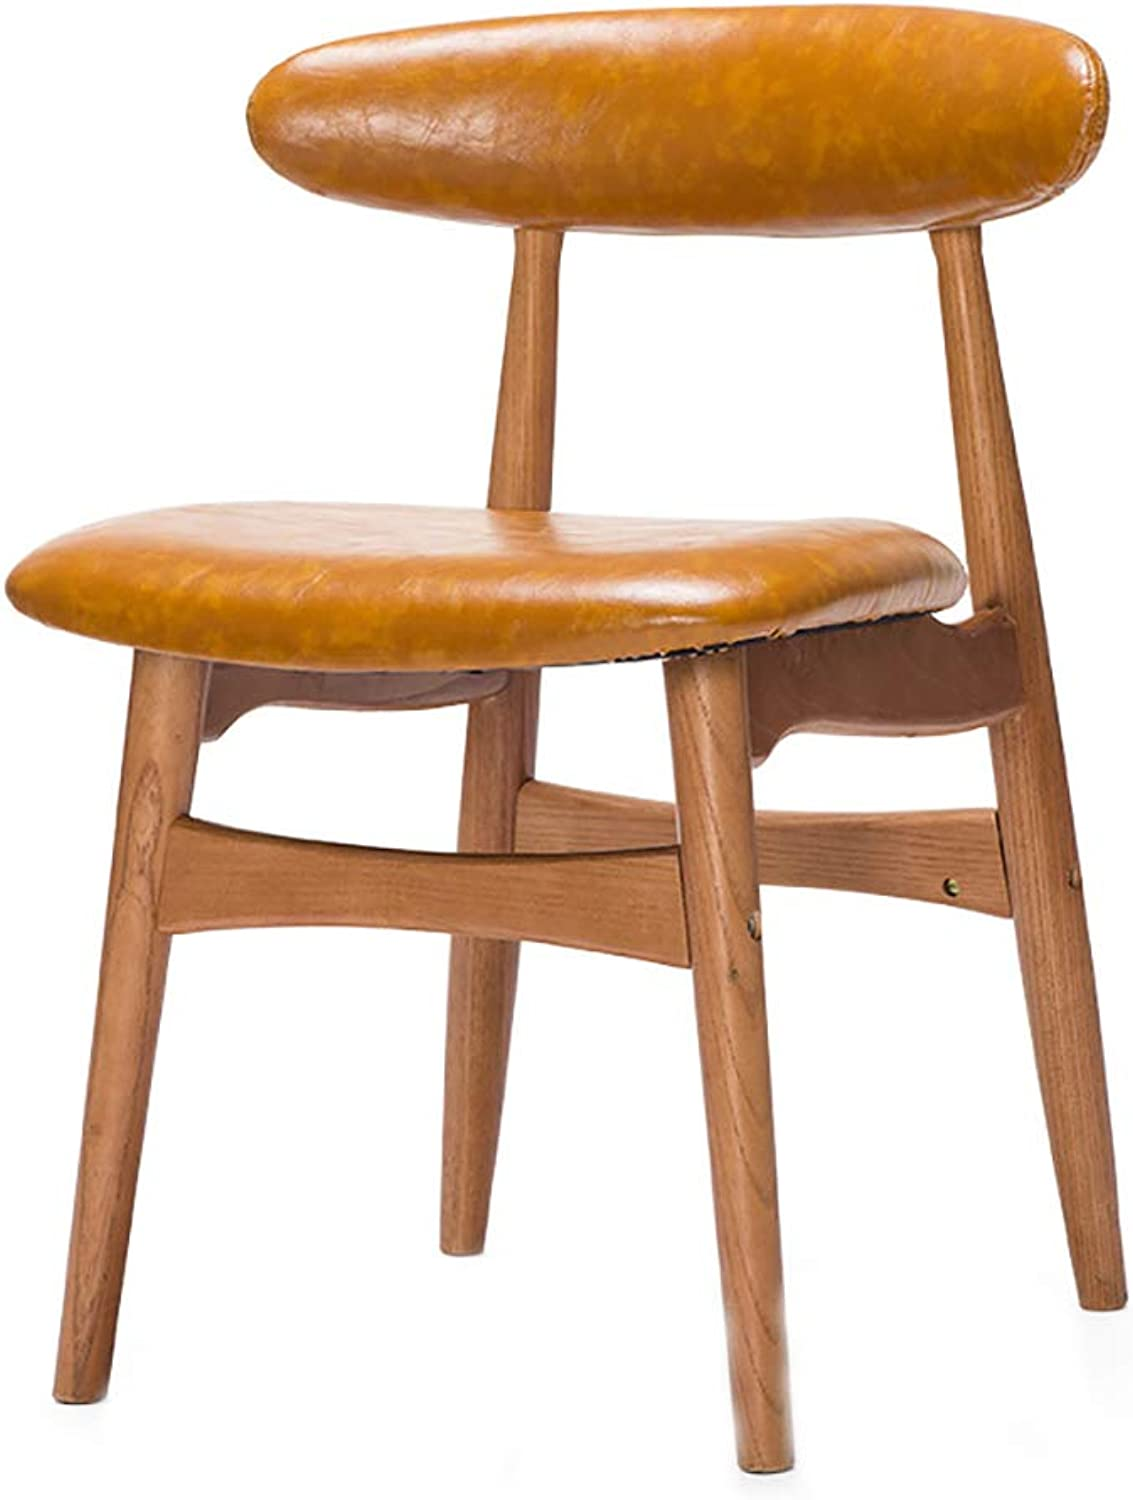 Dining Chair Solid Wood Chair Office Chair Desk Chair Simple Modern Coffee Shop Chair Nordic Retro Chair (color   C)